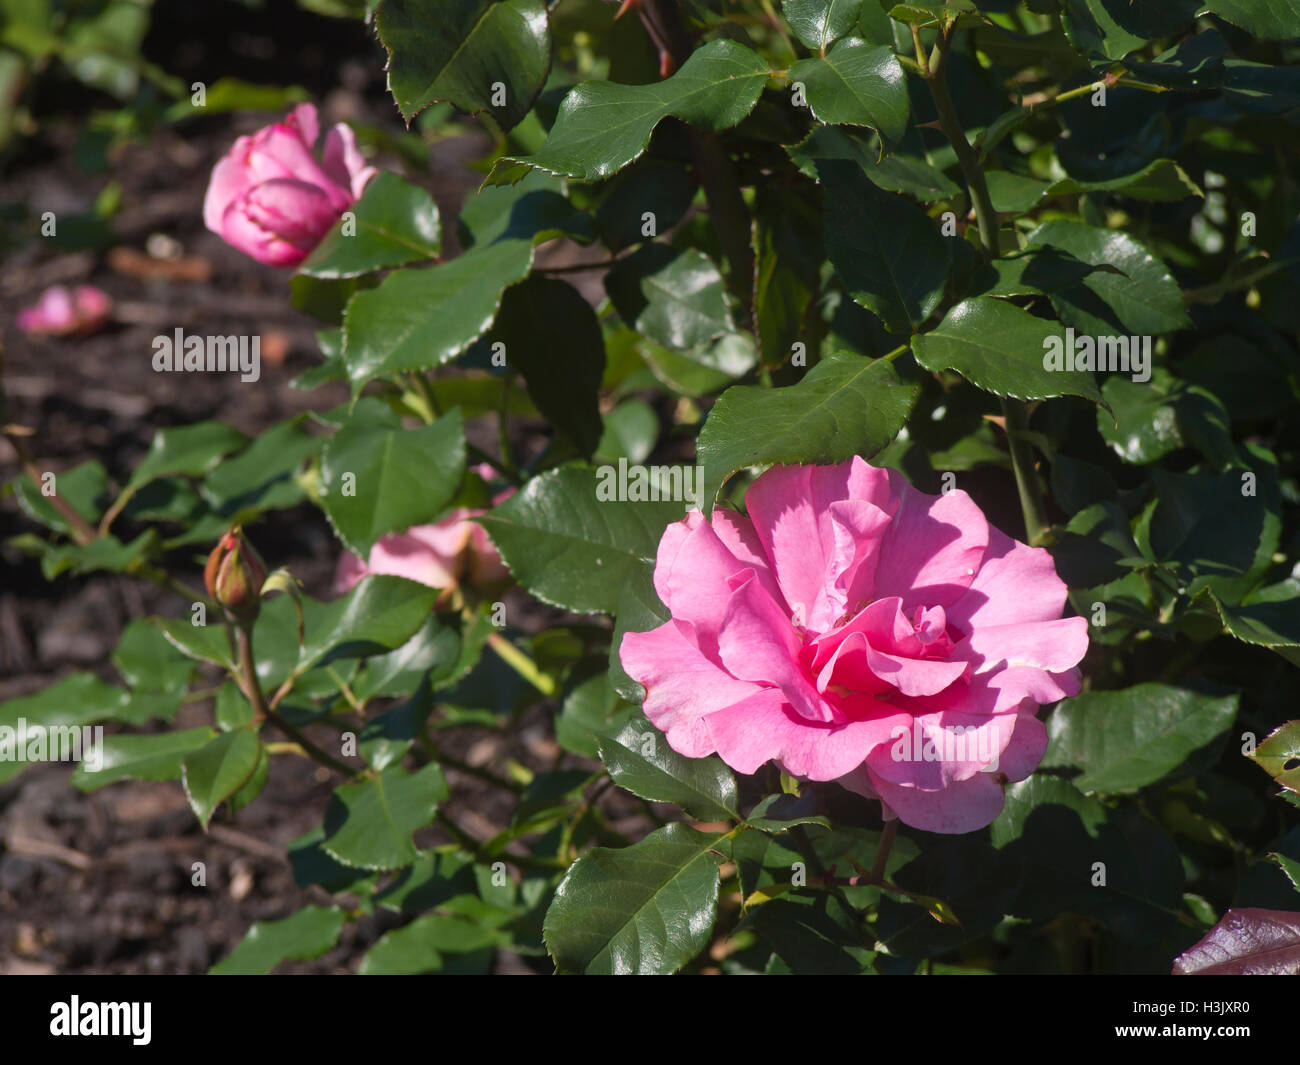 Pink filled rose in bloom with dark green leaves, Romanze Tantau 1984, photographed in Frognerparken rose garden - Stock Image